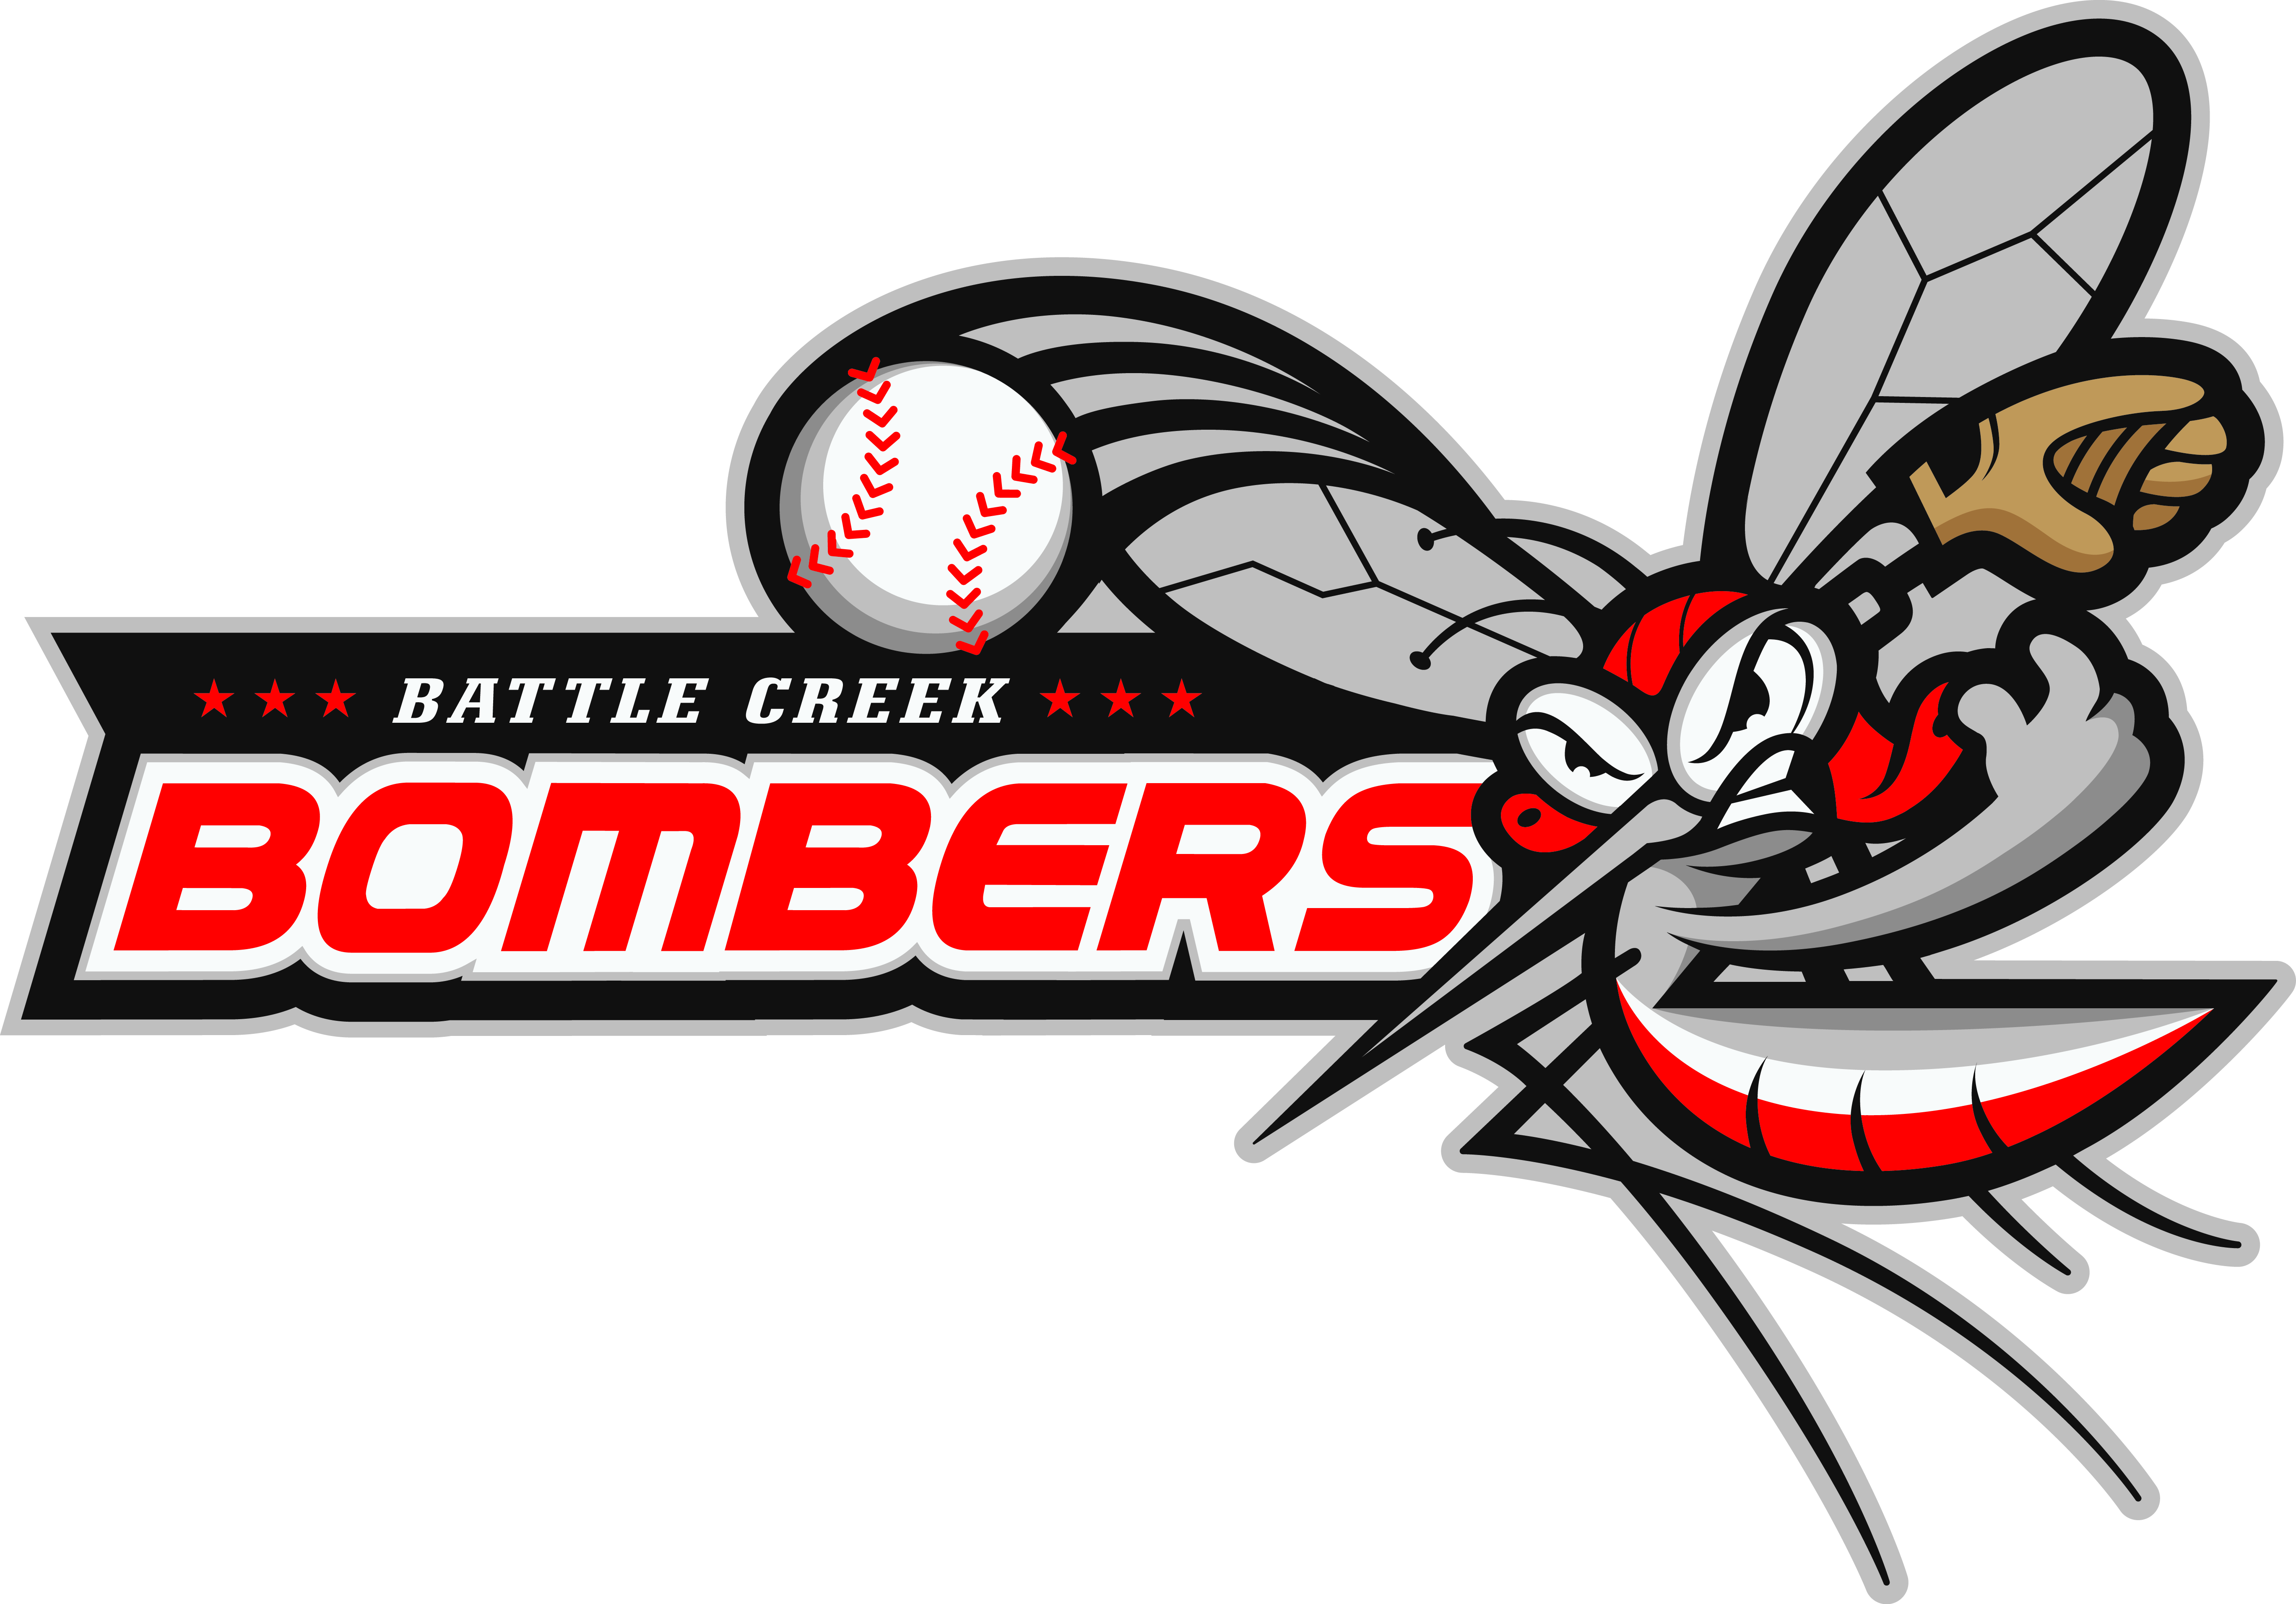 Press release the battle creek bombers unveiled new team logos and